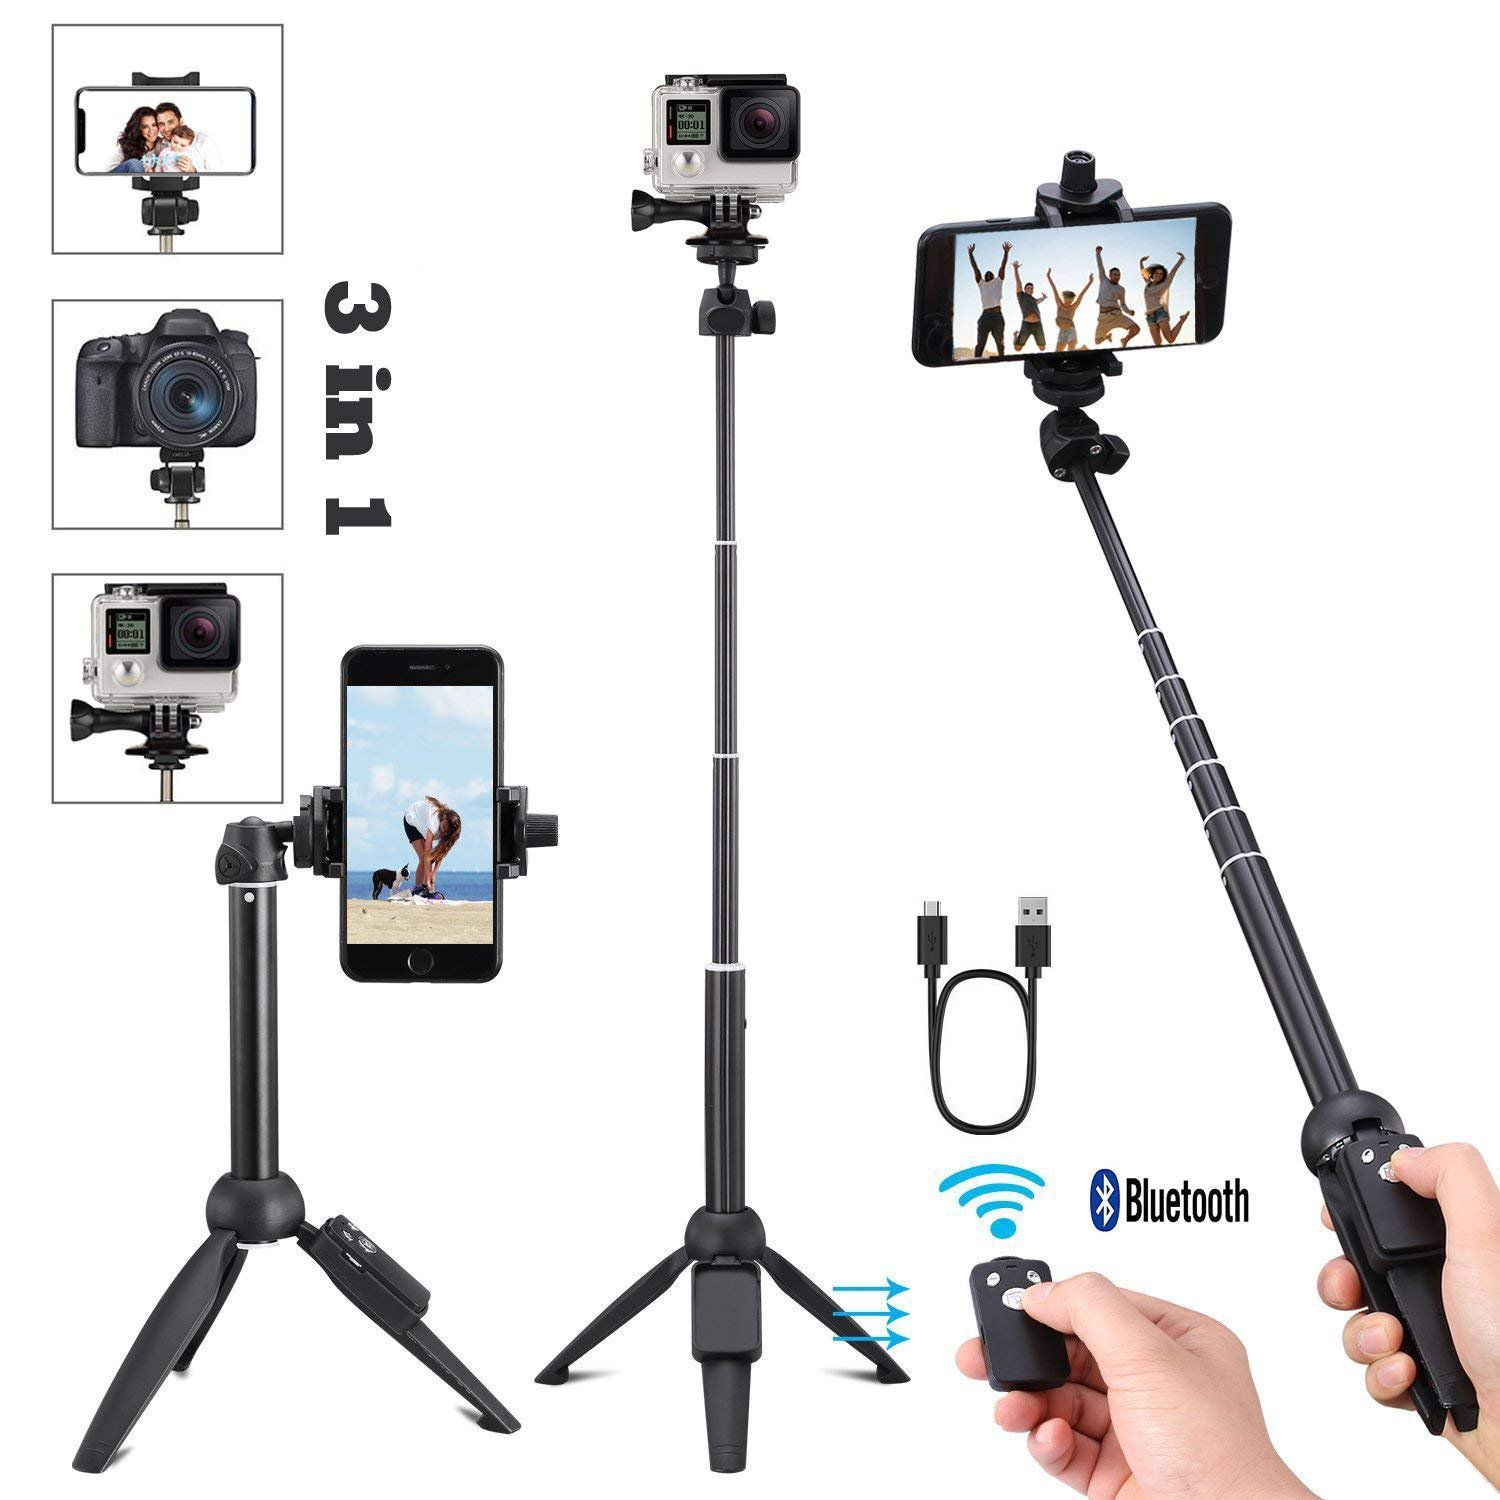 40 Inch 3 in 1 Portable Aluminum Alloy Selfie Stick Bluetooth, Extendable Selfie Stick Tripod with Wireless Remote Control for iPhone 6 7 8 X Plus, Samsung Galaxy S9 Note8, Gopro,Digital cameras